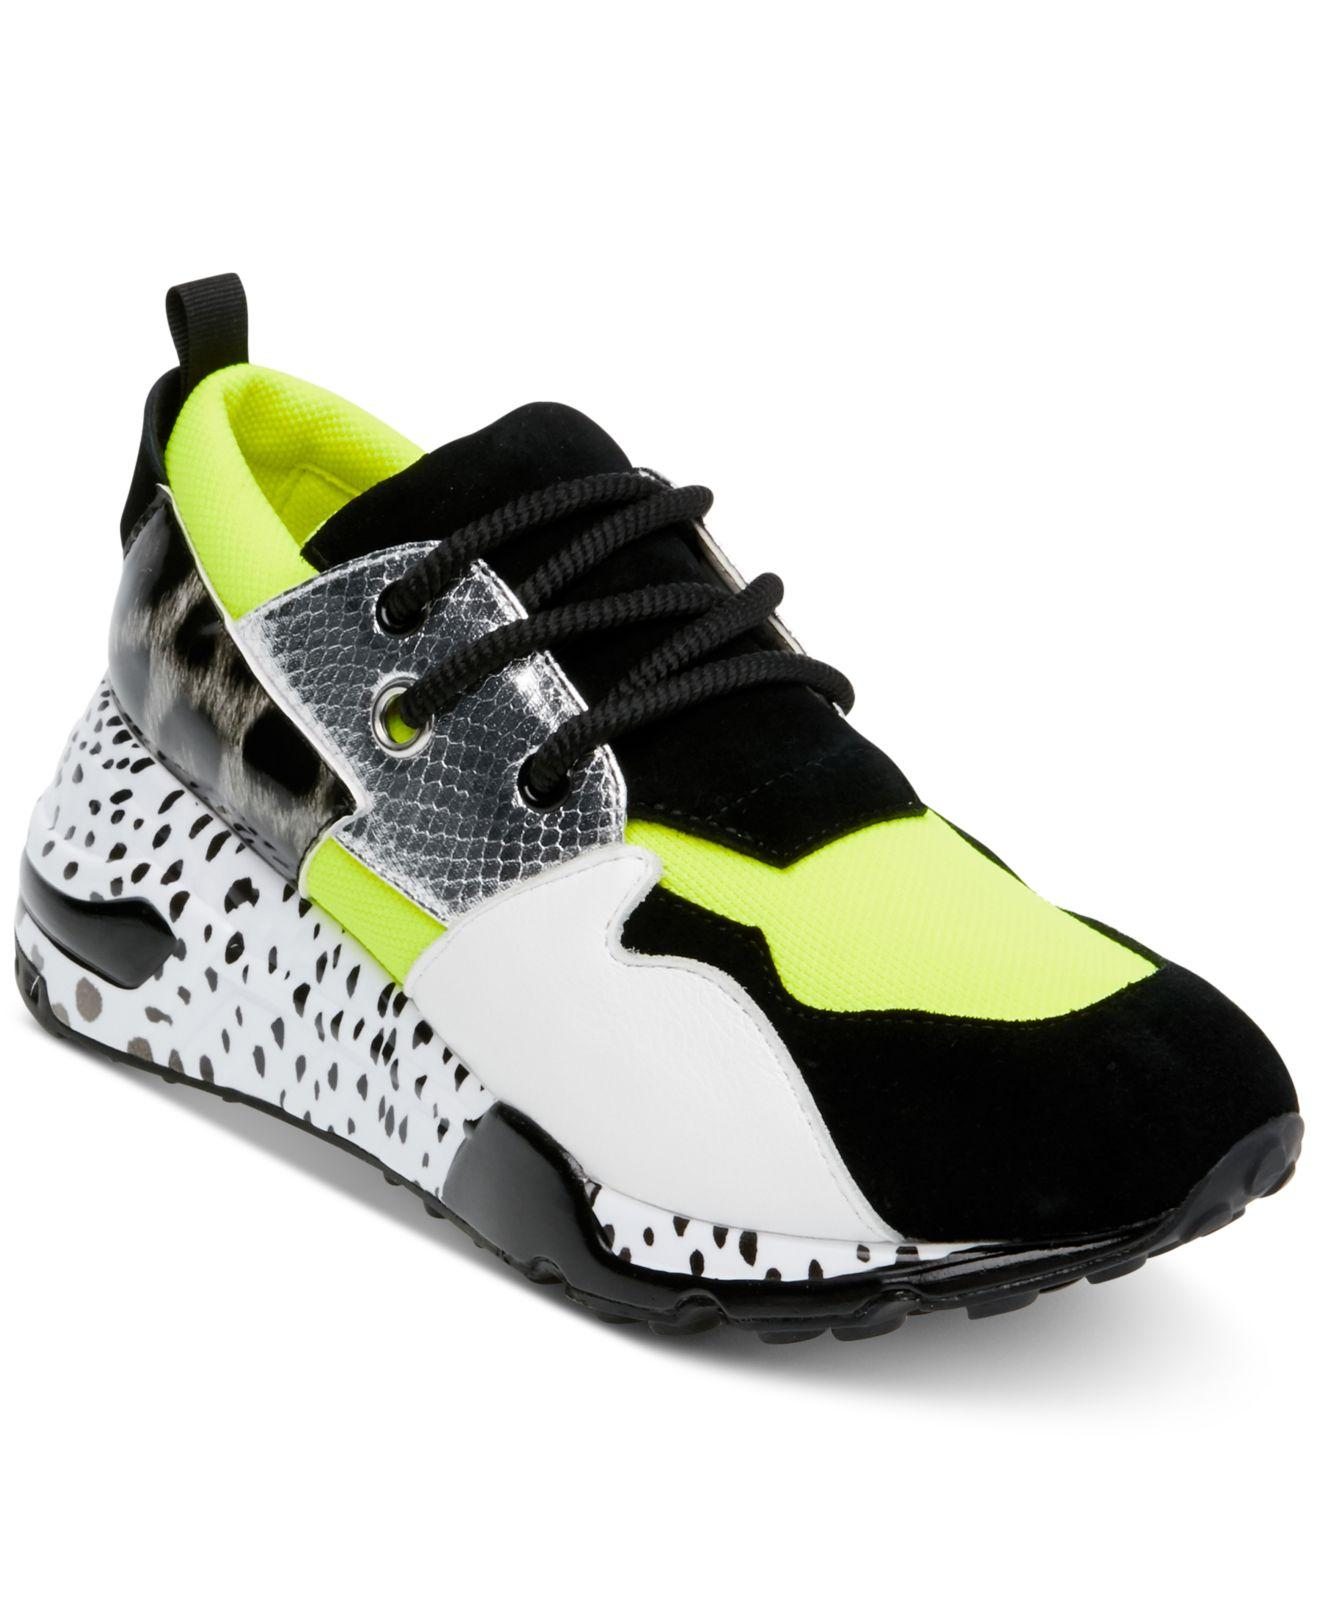 2f4dc69dccb Women's Green Cliff Sneakers